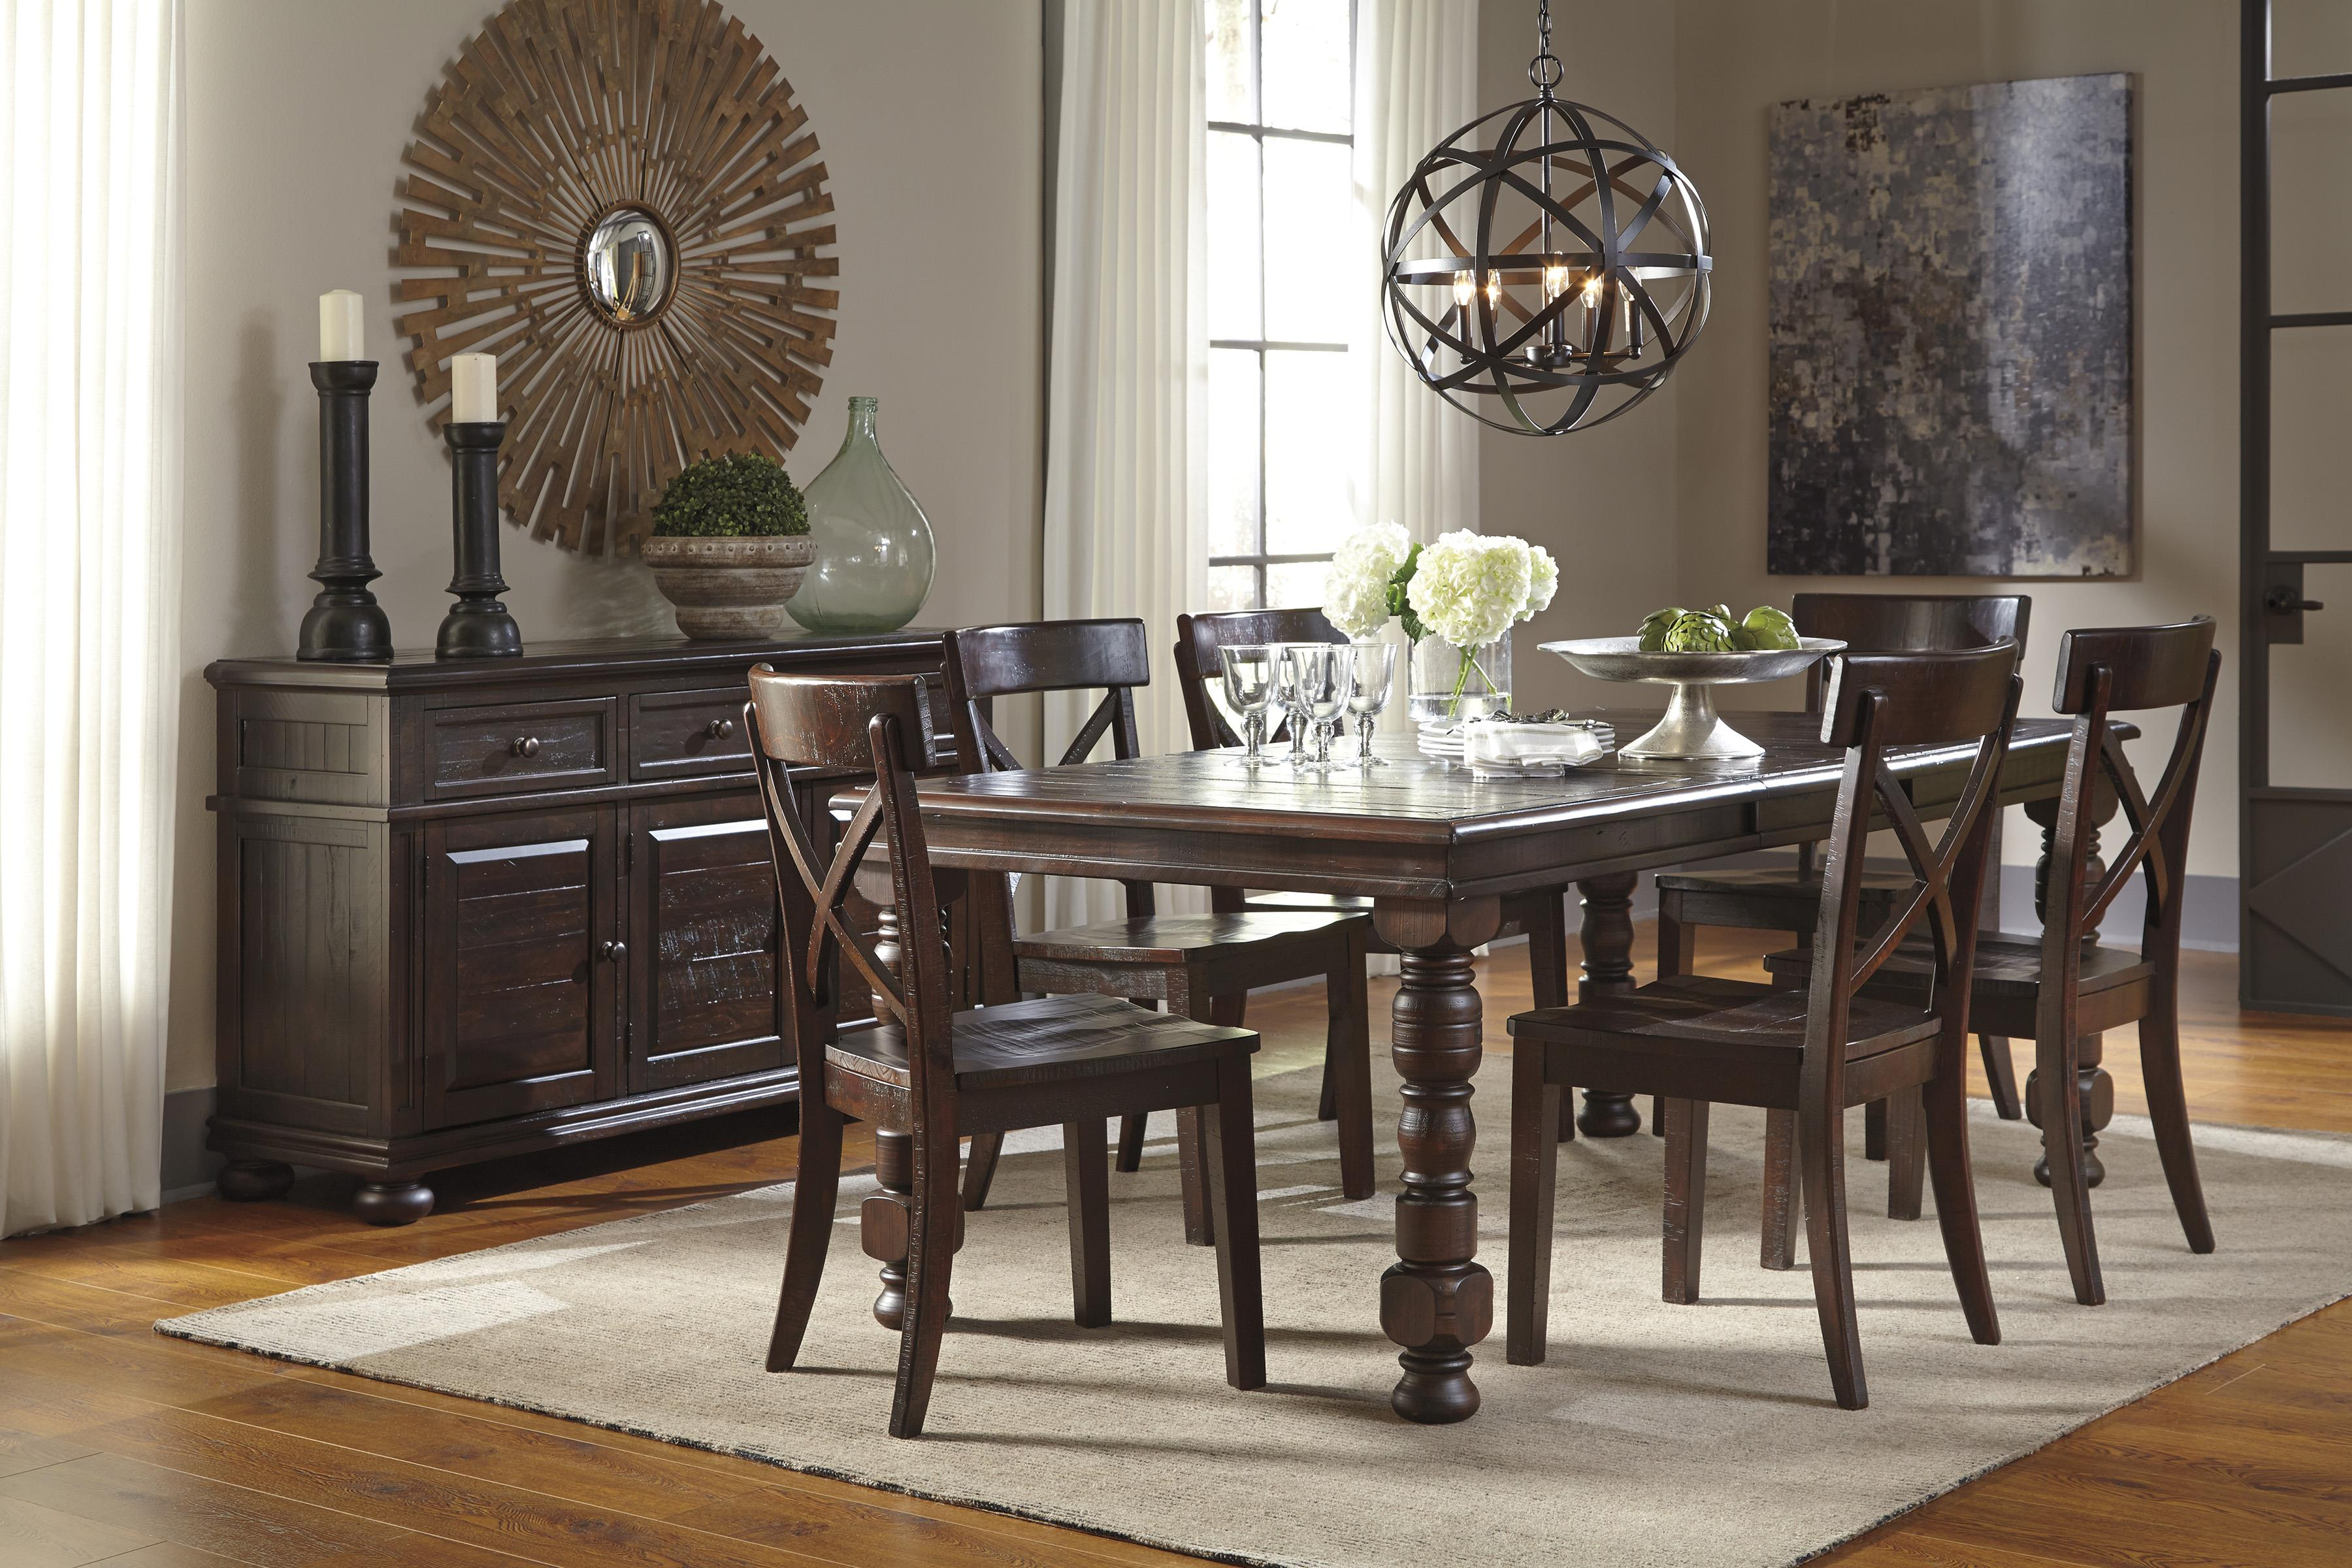 Solid Pine Dining Room Server by Signature Design by